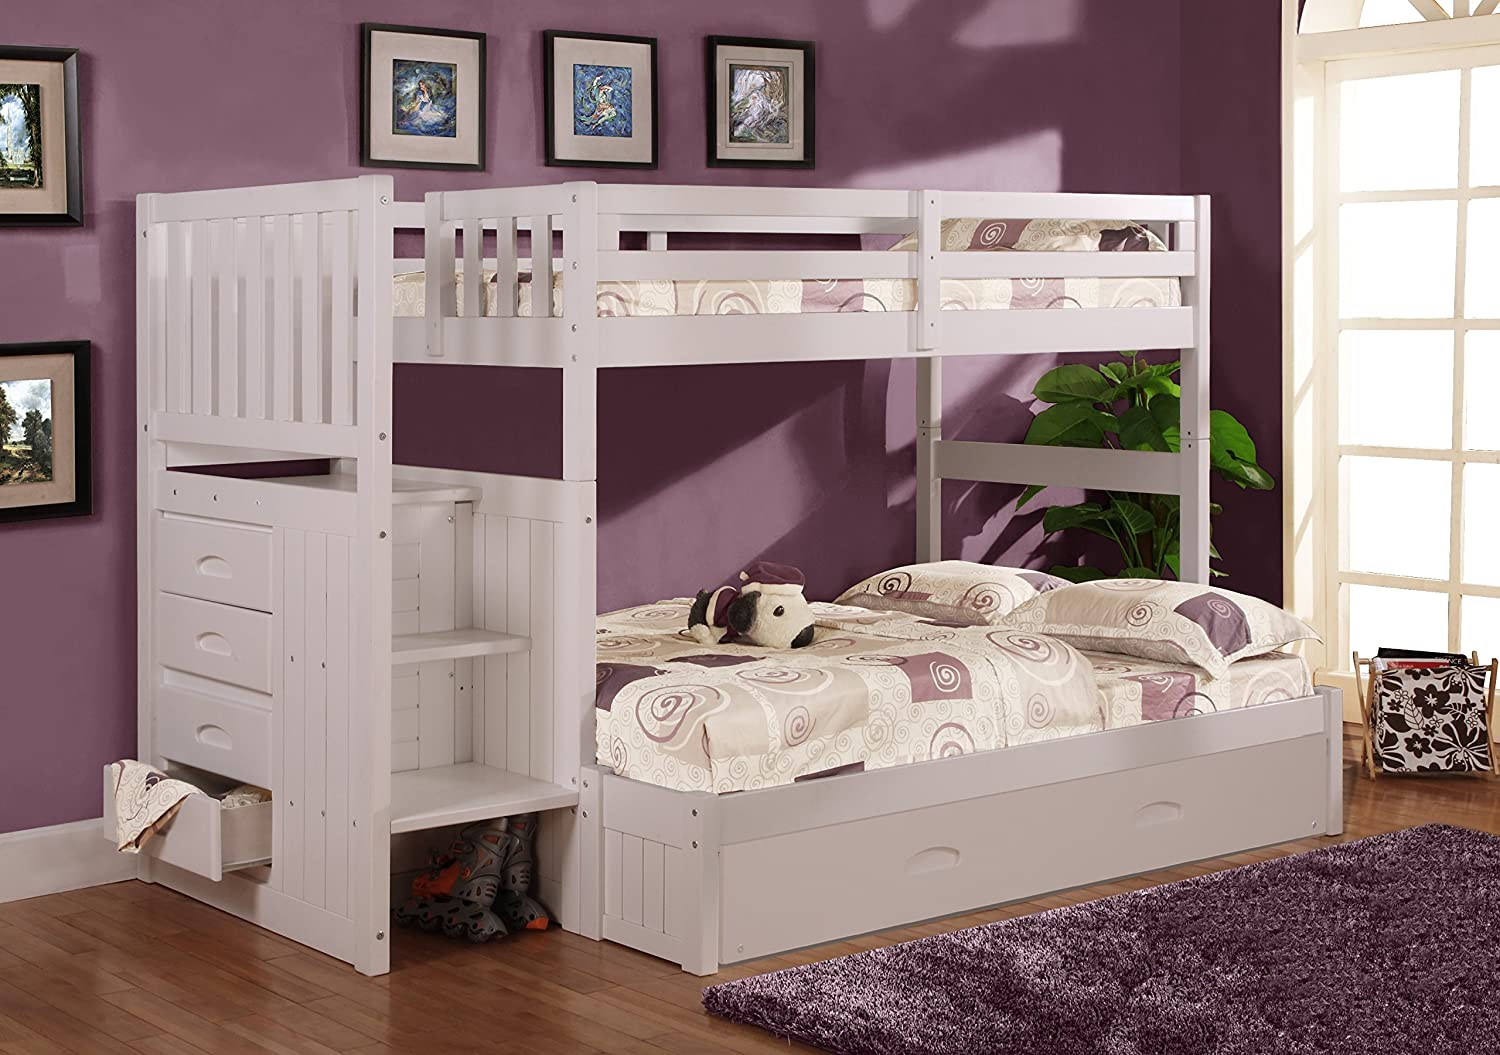 Twin over full bunk bed with stairs and trundle - Amazon Com Twin Over Full Stair Stepper Bed With Trundle In White Finish Kitchen Dining